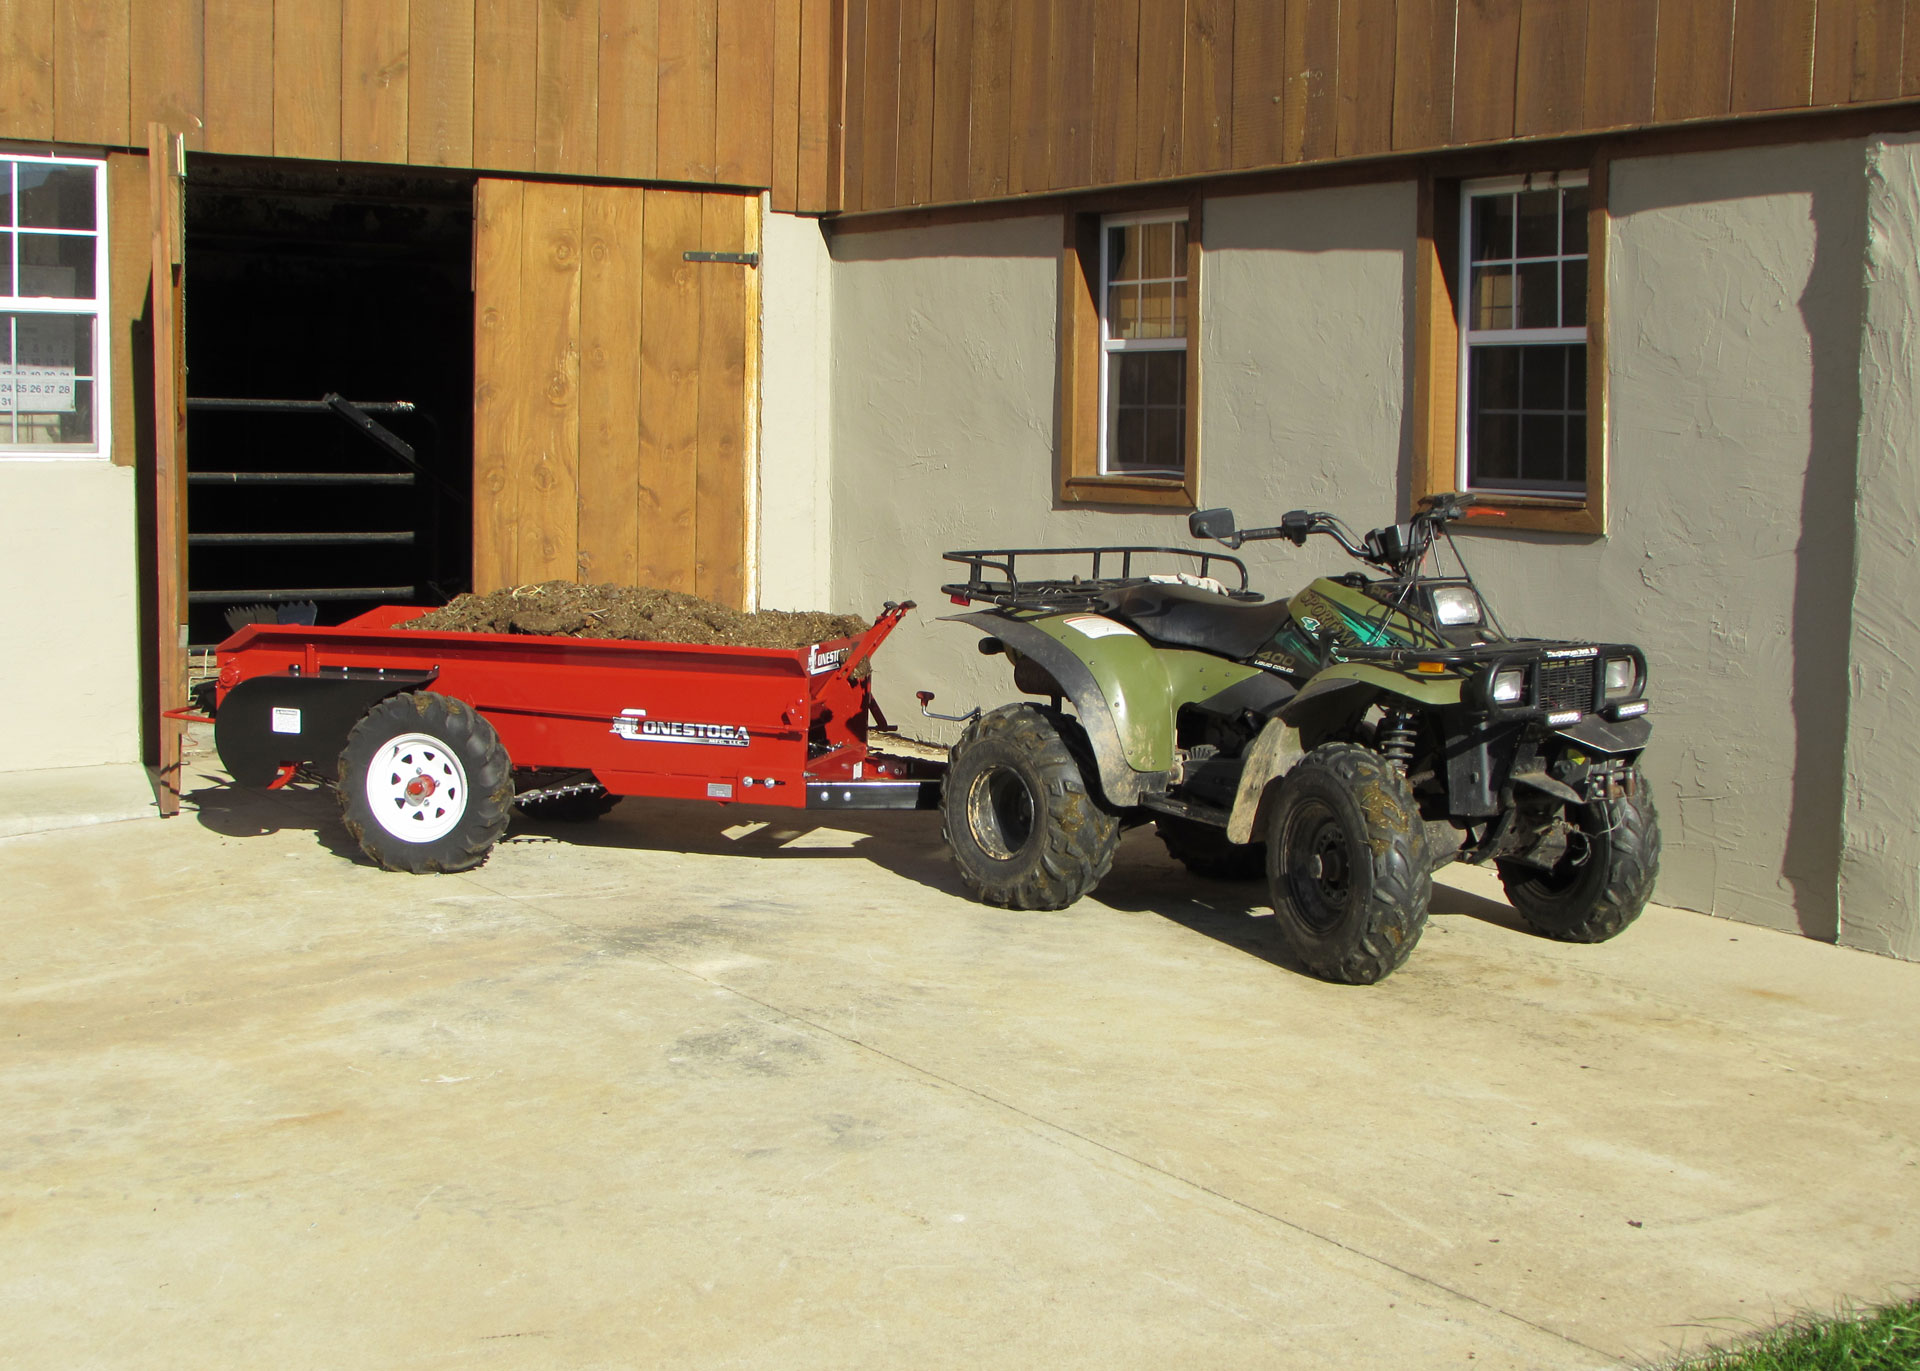 compact manure spreader by conestoga manufacturing